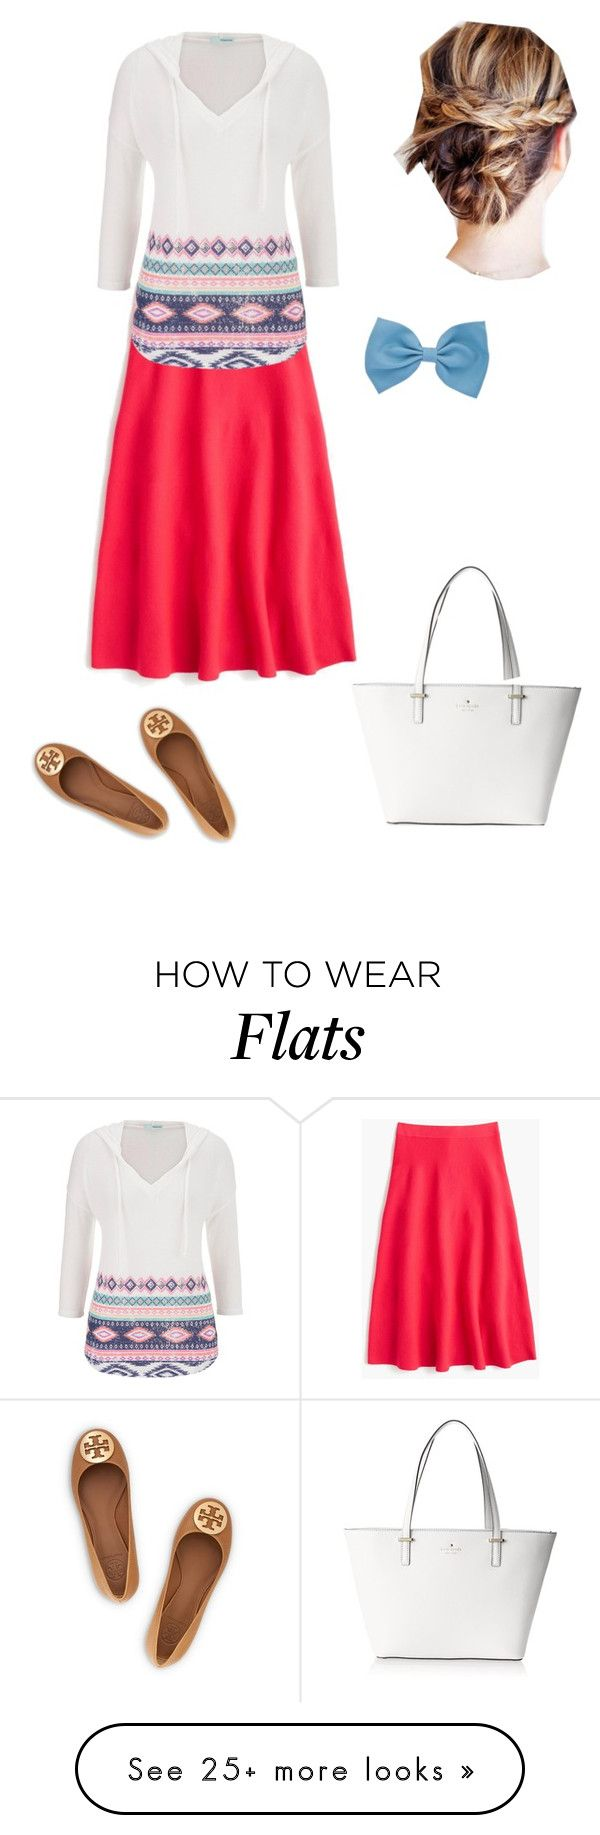 """Untitled #379"" by brendansara1018 on Polyvore featuring J.Crew, maurices, Kate Spade and Tory Burch"